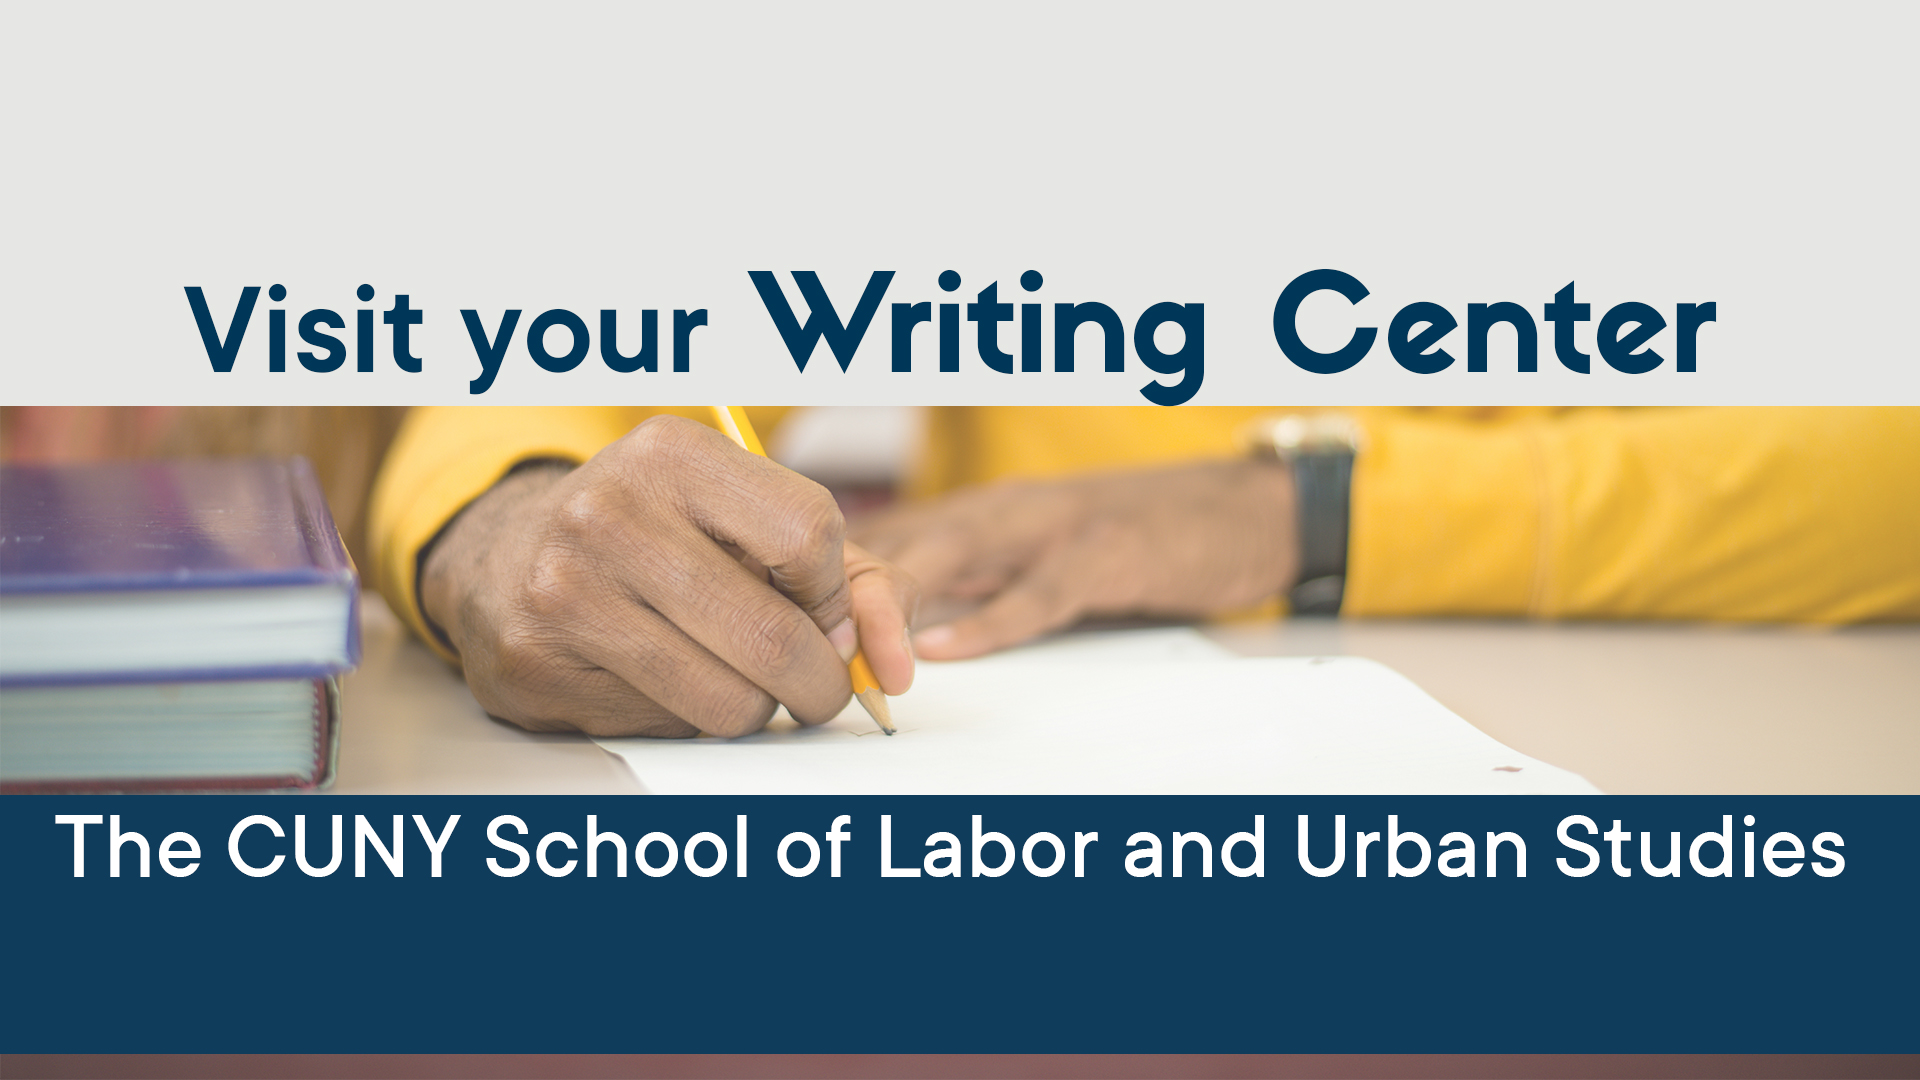 Visit the Writing Center now located on the 18th floor